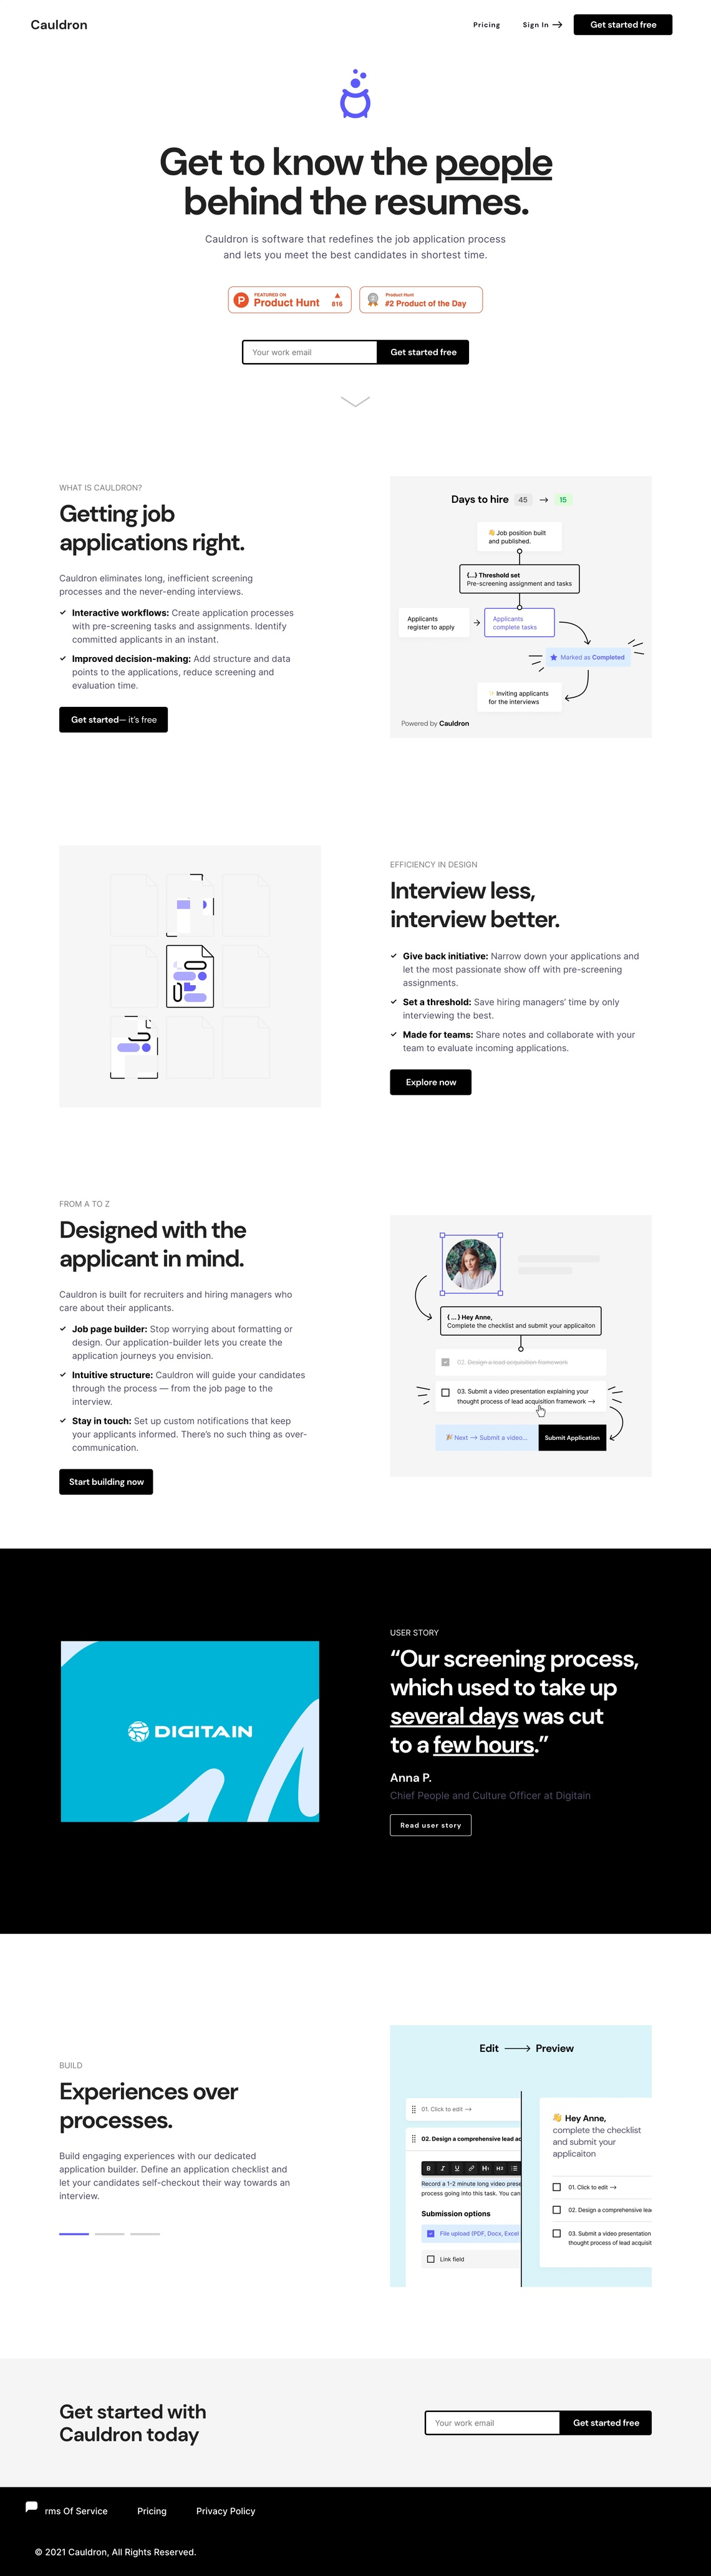 Cauldron | The Job Application Process — Redesigned